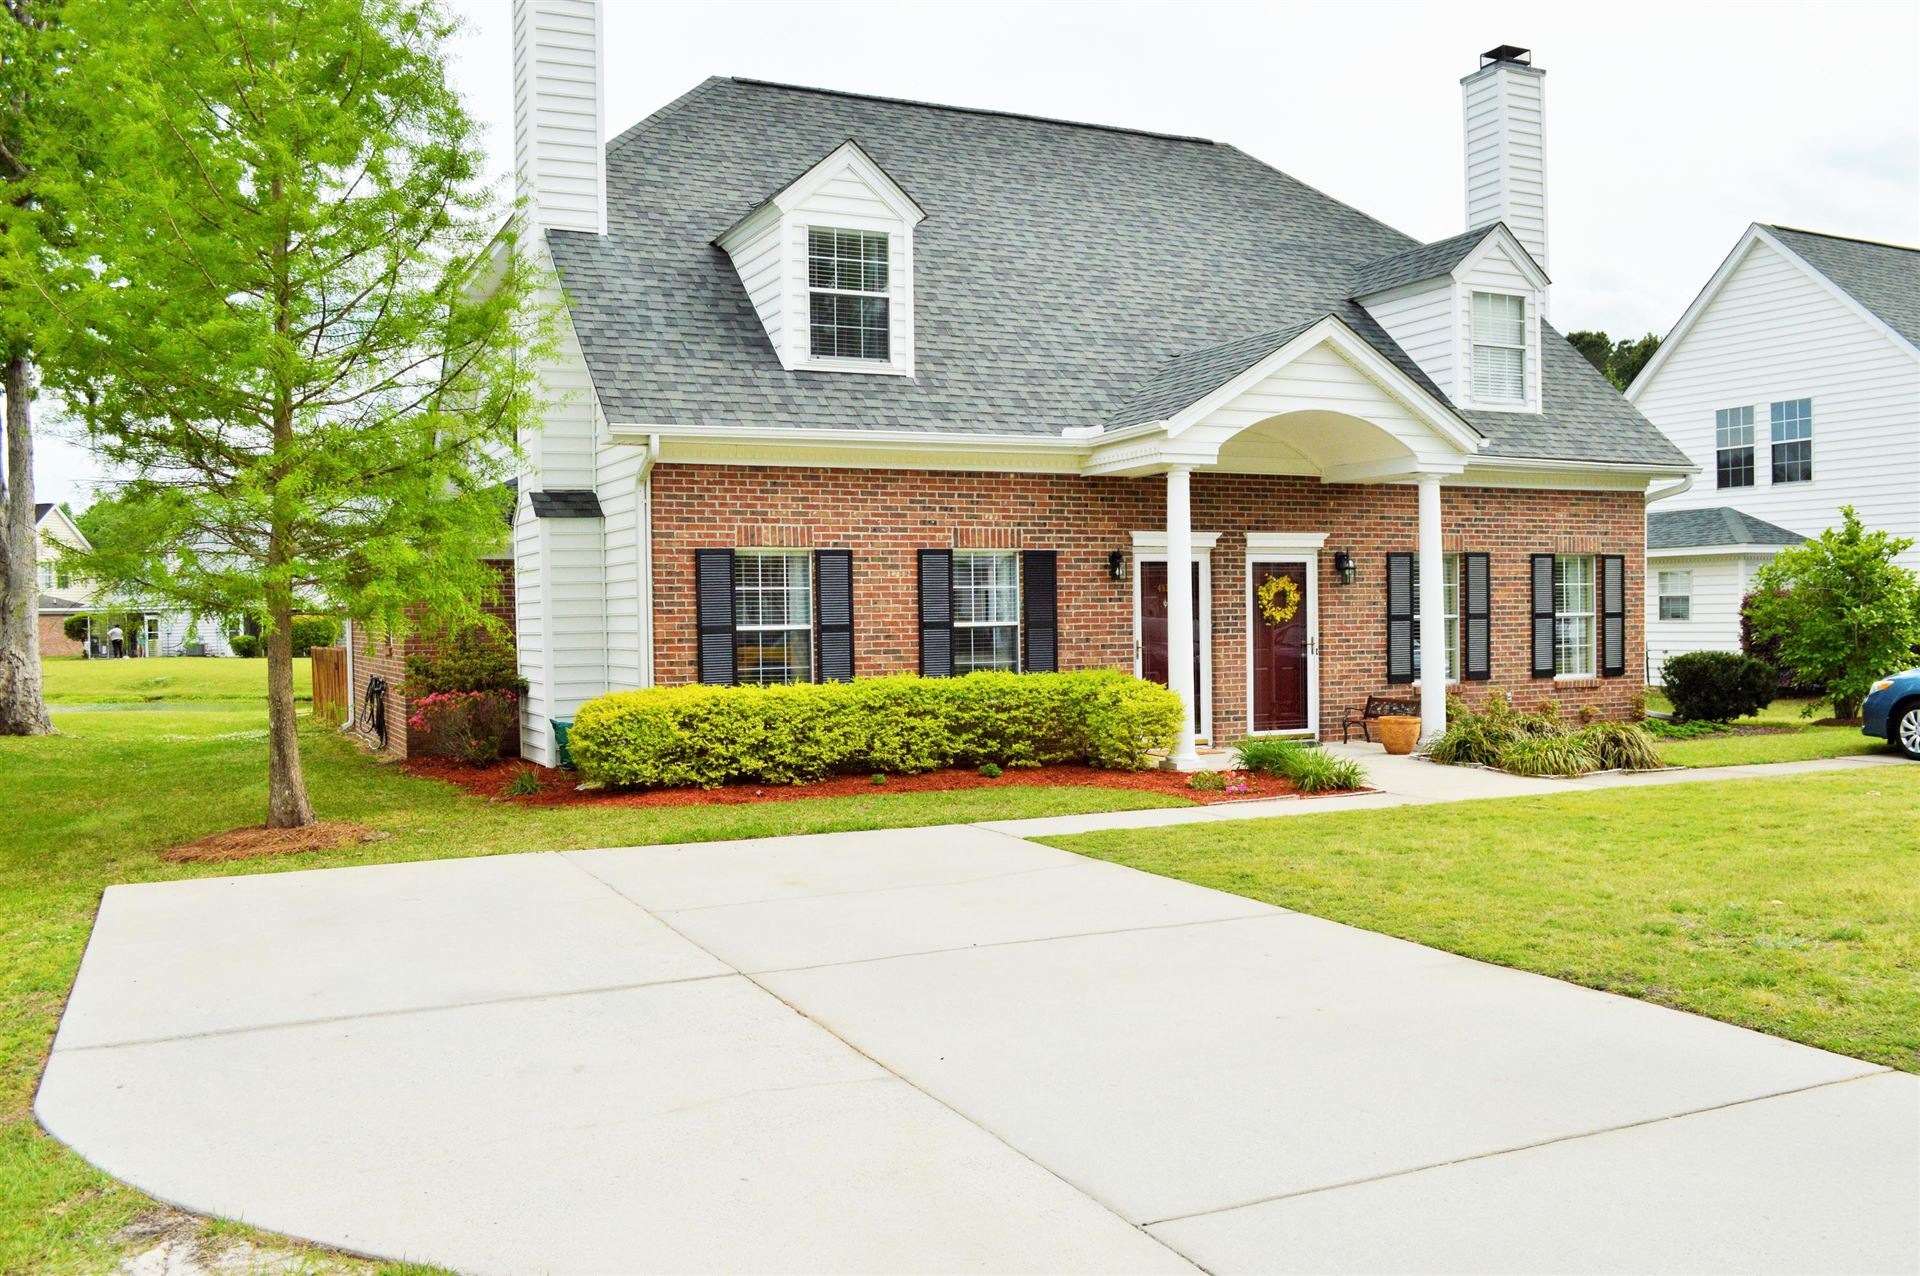 Photo of 4816 Habersham Lane, Summerville, SC 29485 (MLS # 21010251)